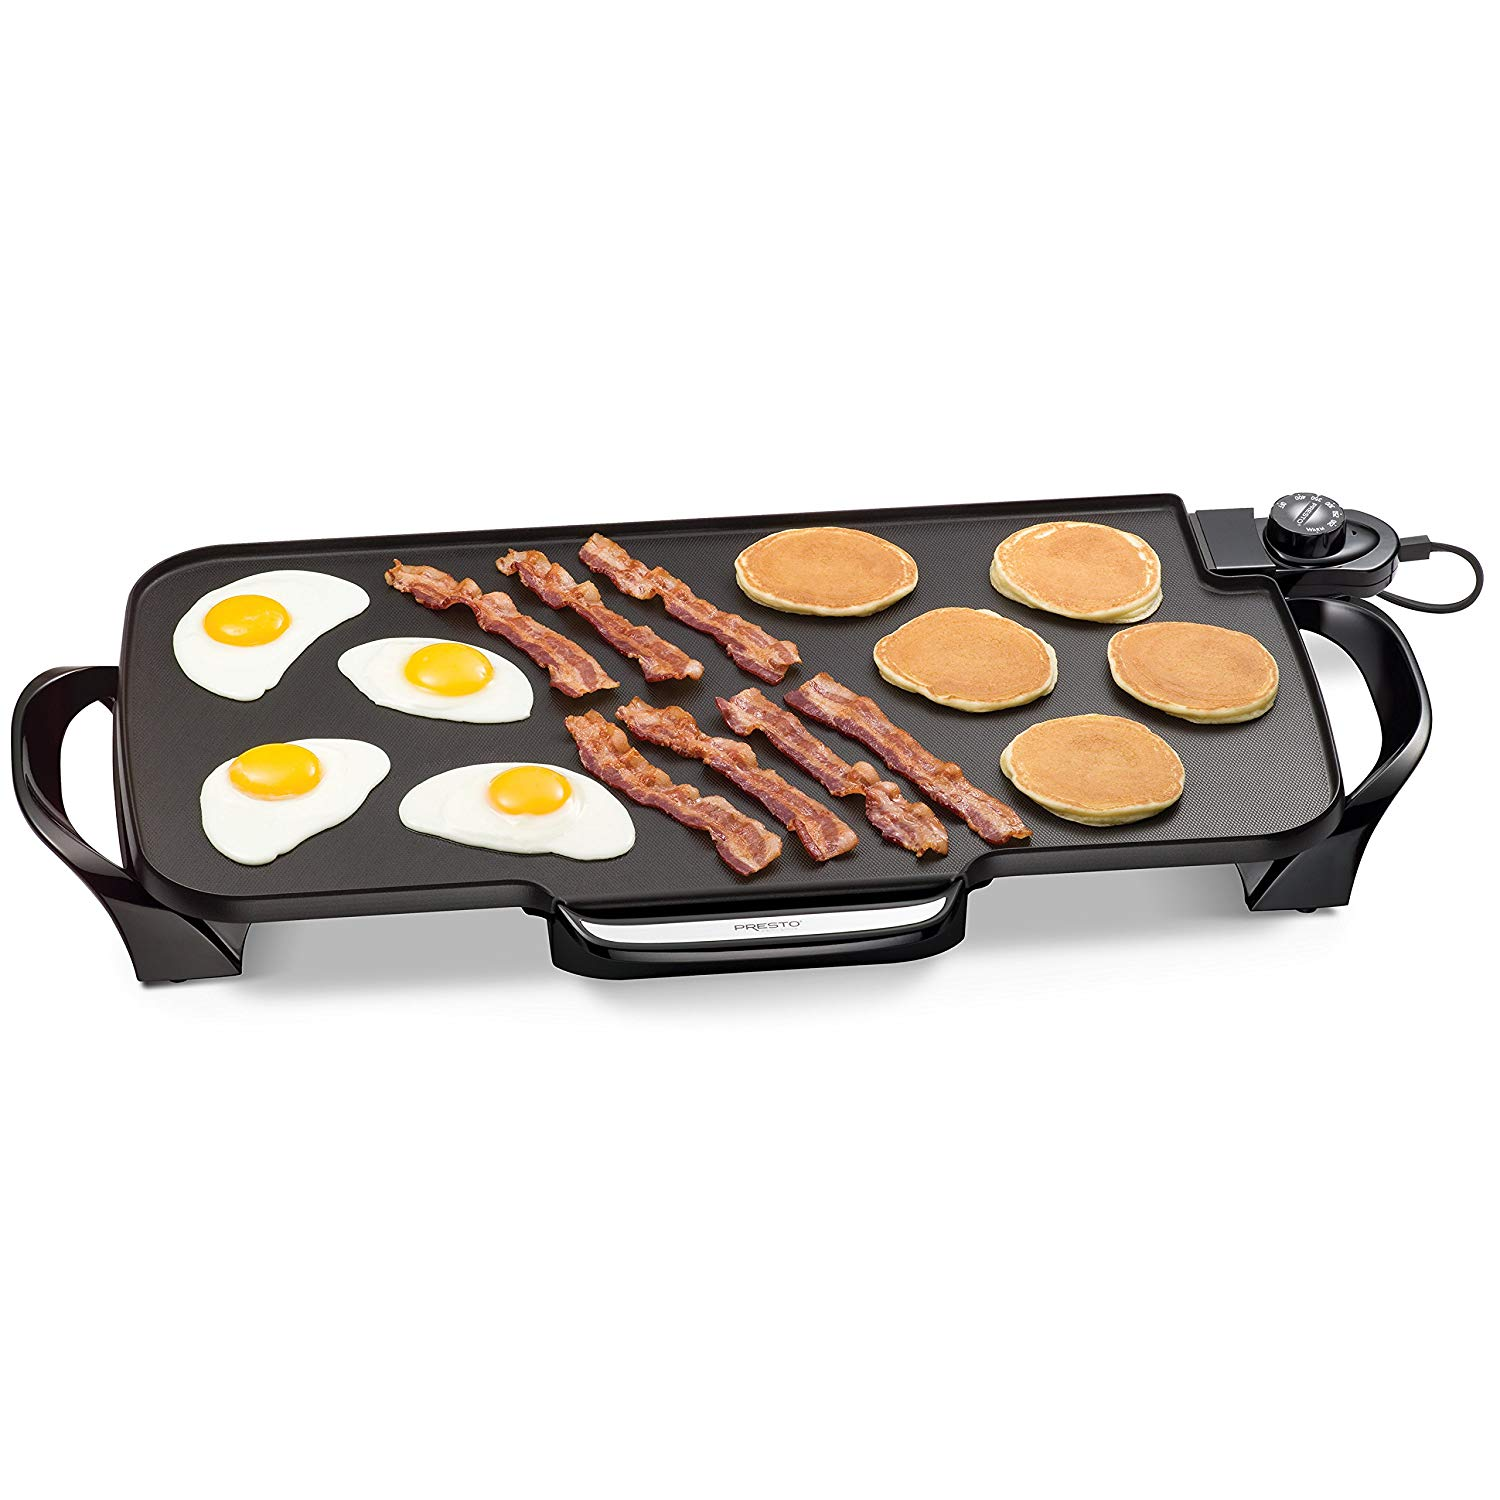 Review of Presto 07061 22-inch Electric Griddle With Removable Handles